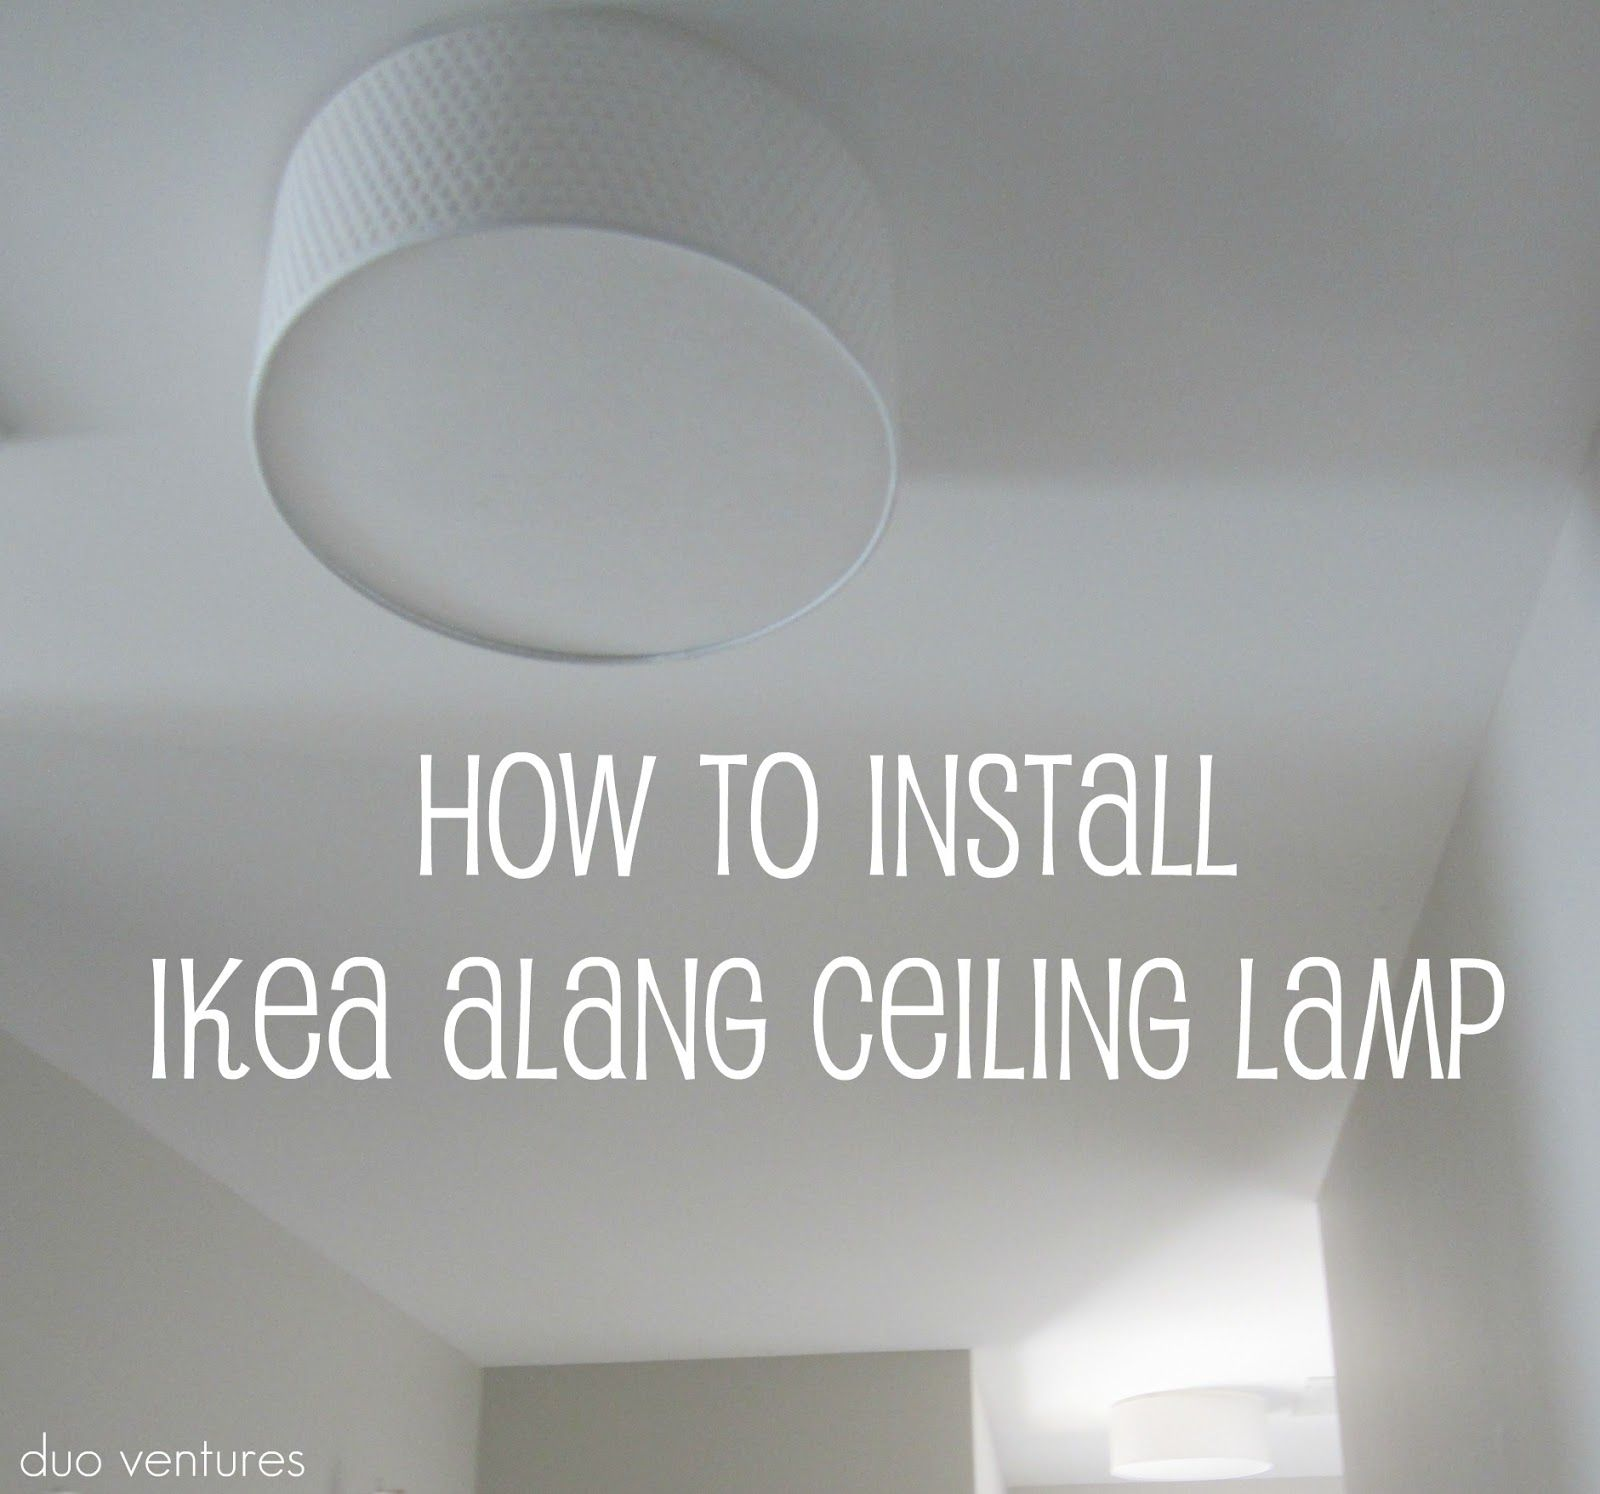 How To Install Ikea Alang Ceiling Lamp